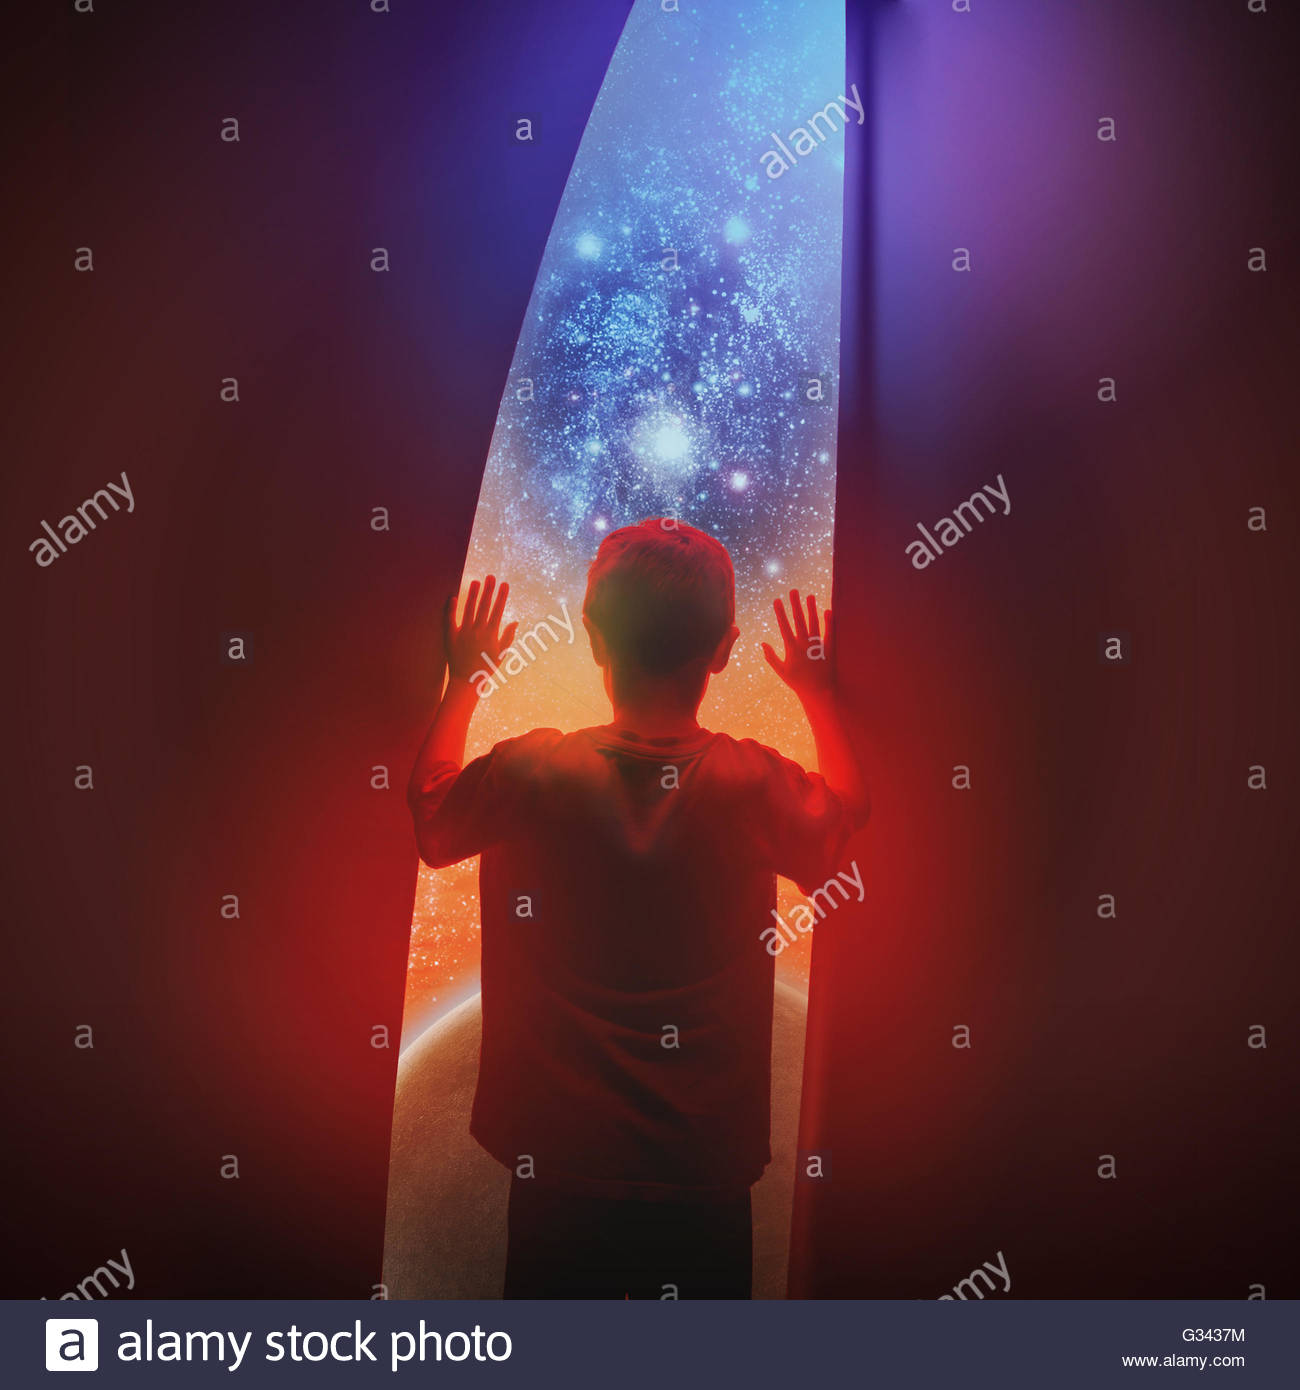 A space boy is looking out a window with stars and a galaxy planet for a exploration or science concept. - Stock Image